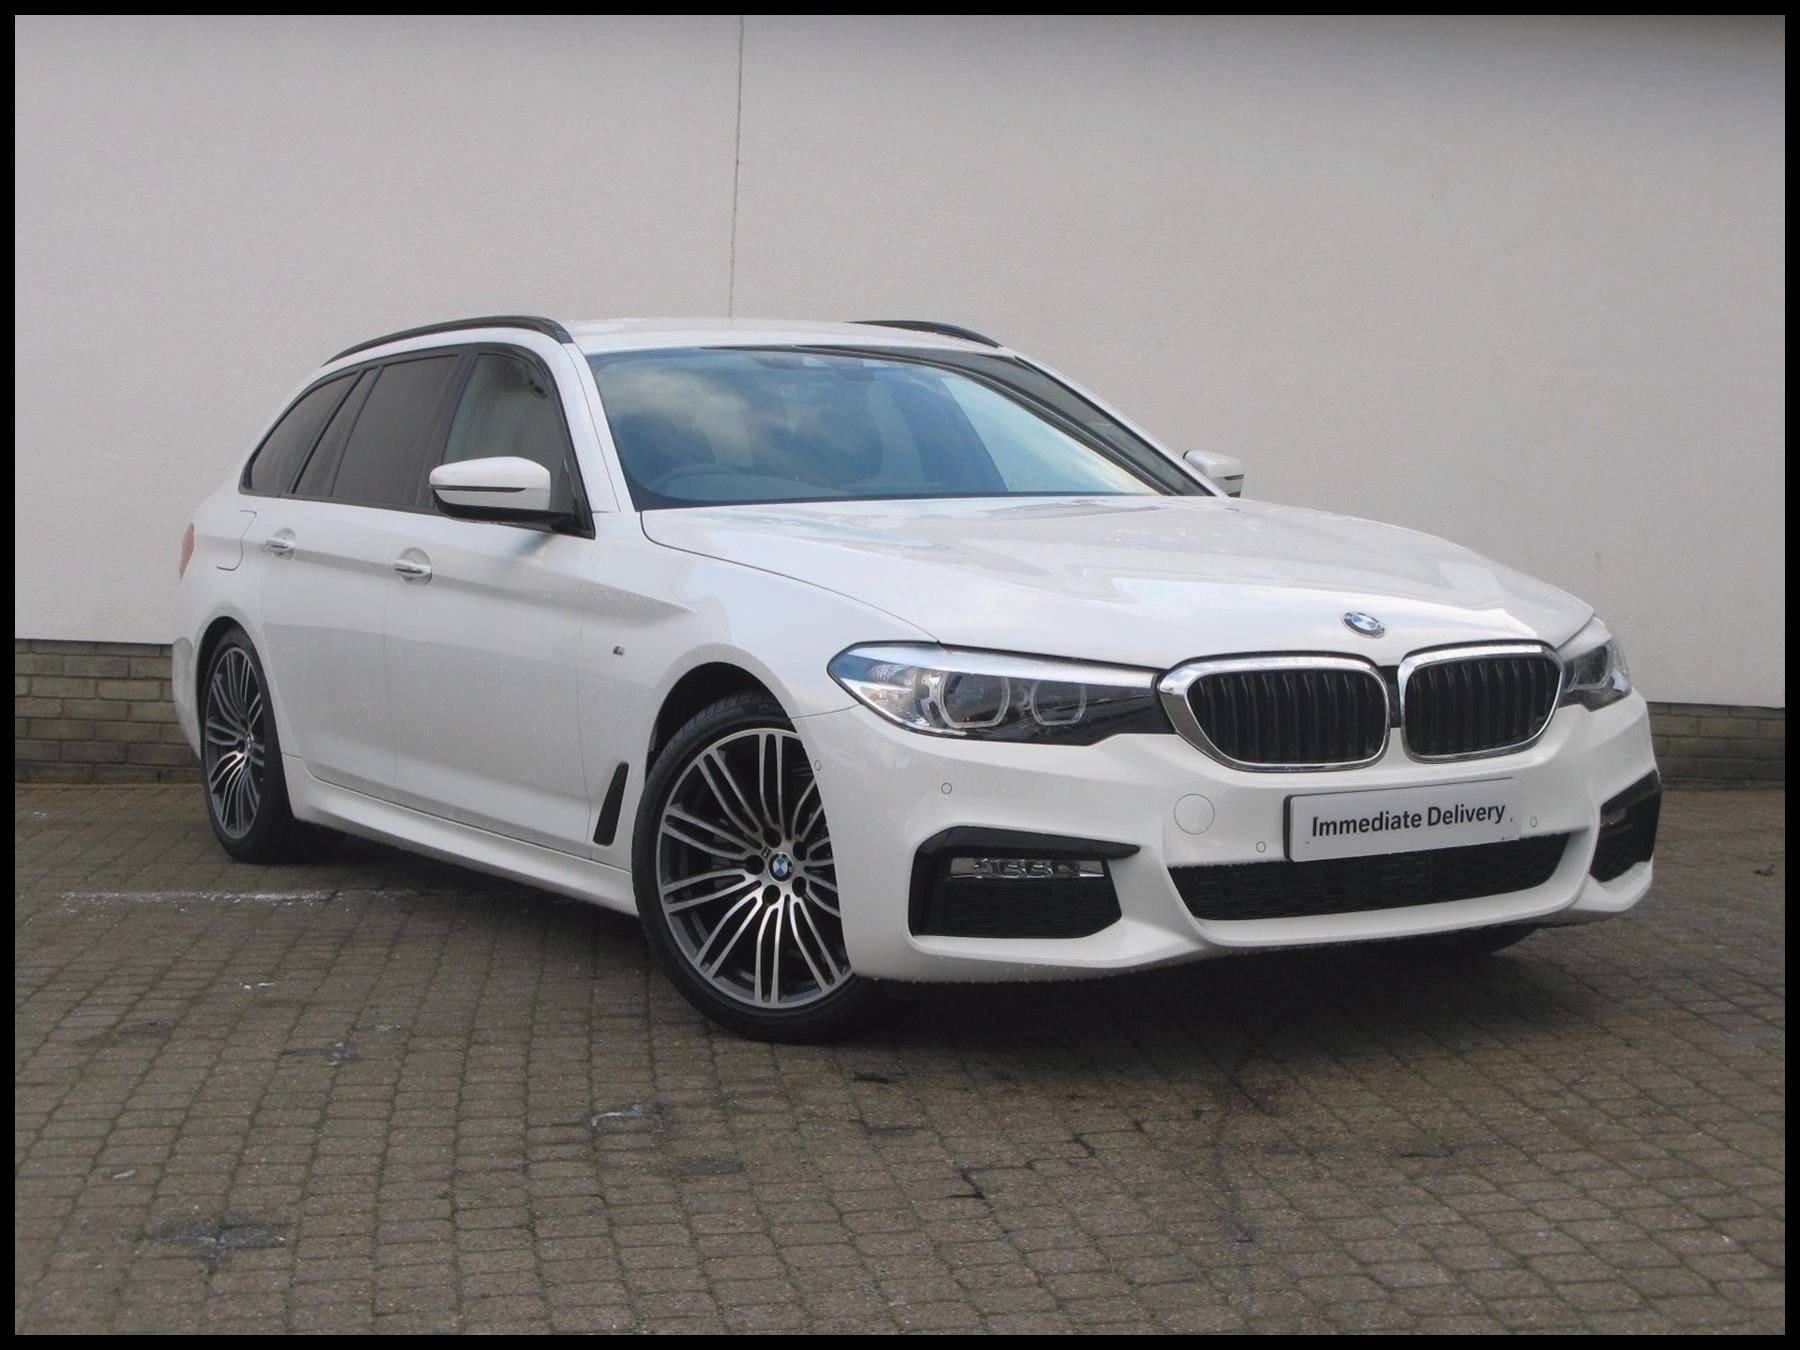 Fun Used 2017 Bmw 5 Series G31 520d M Sport touring B47 2 0d for Sale